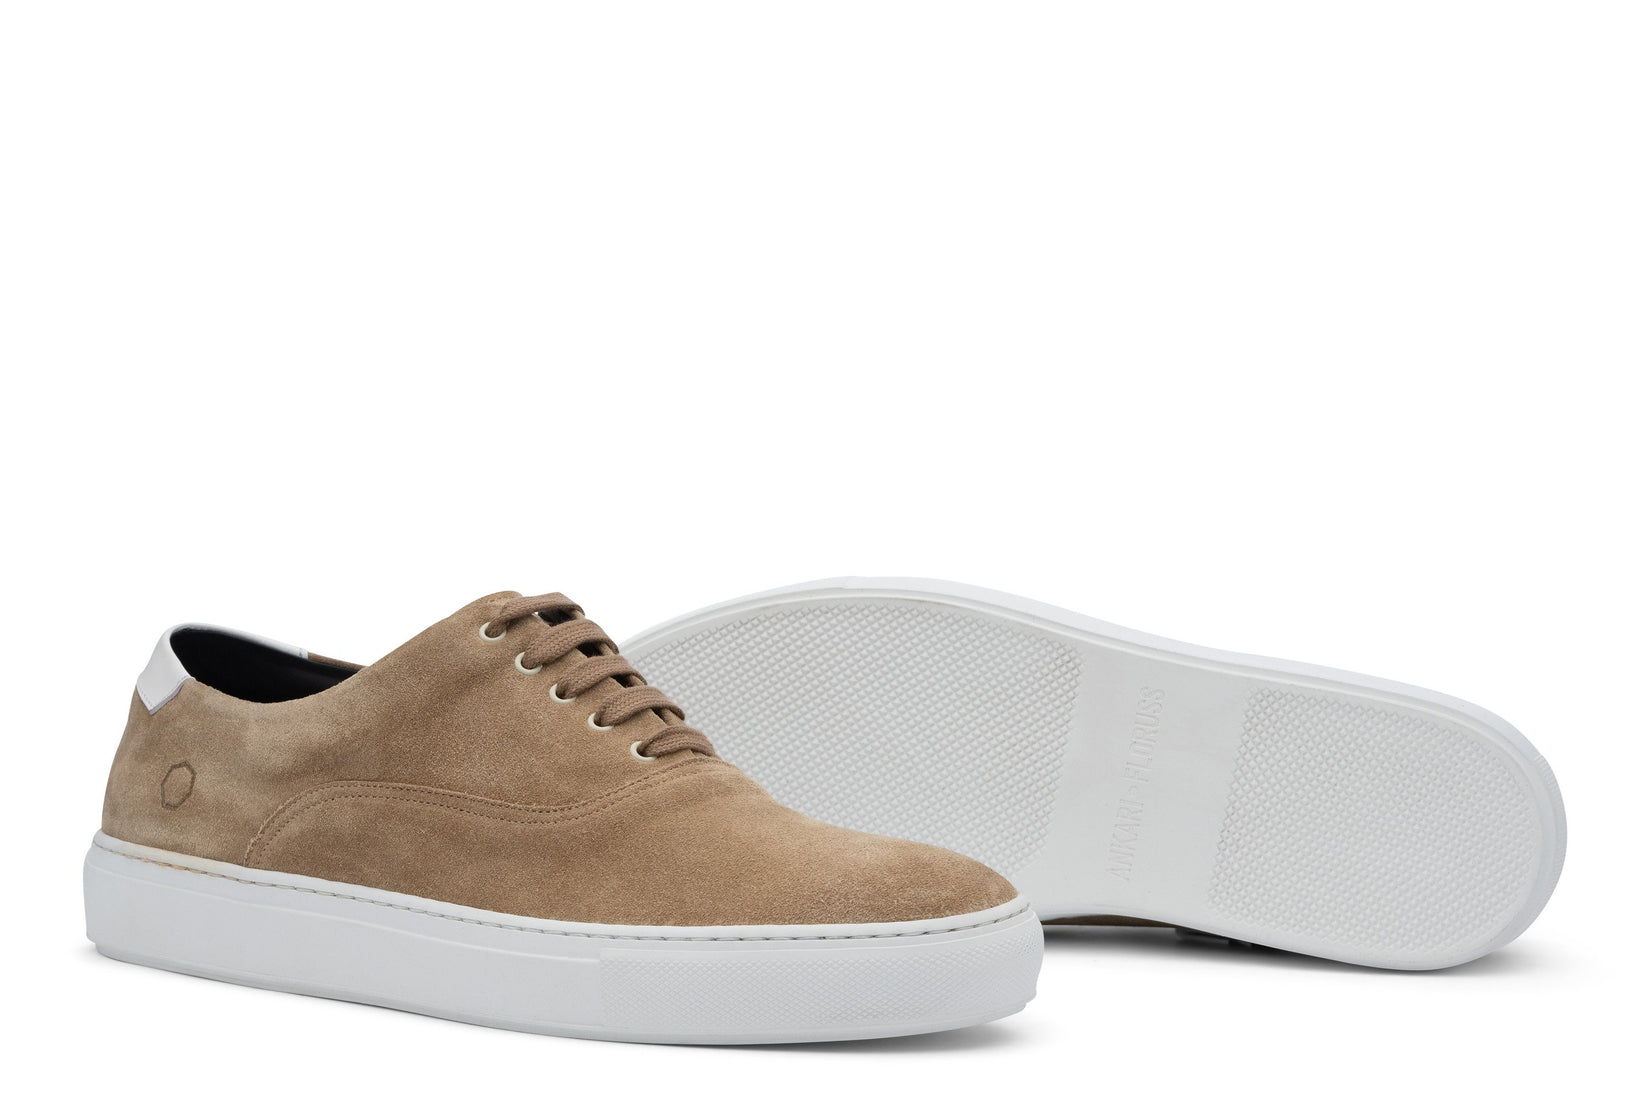 Sunday Skater Sneaker in Beige